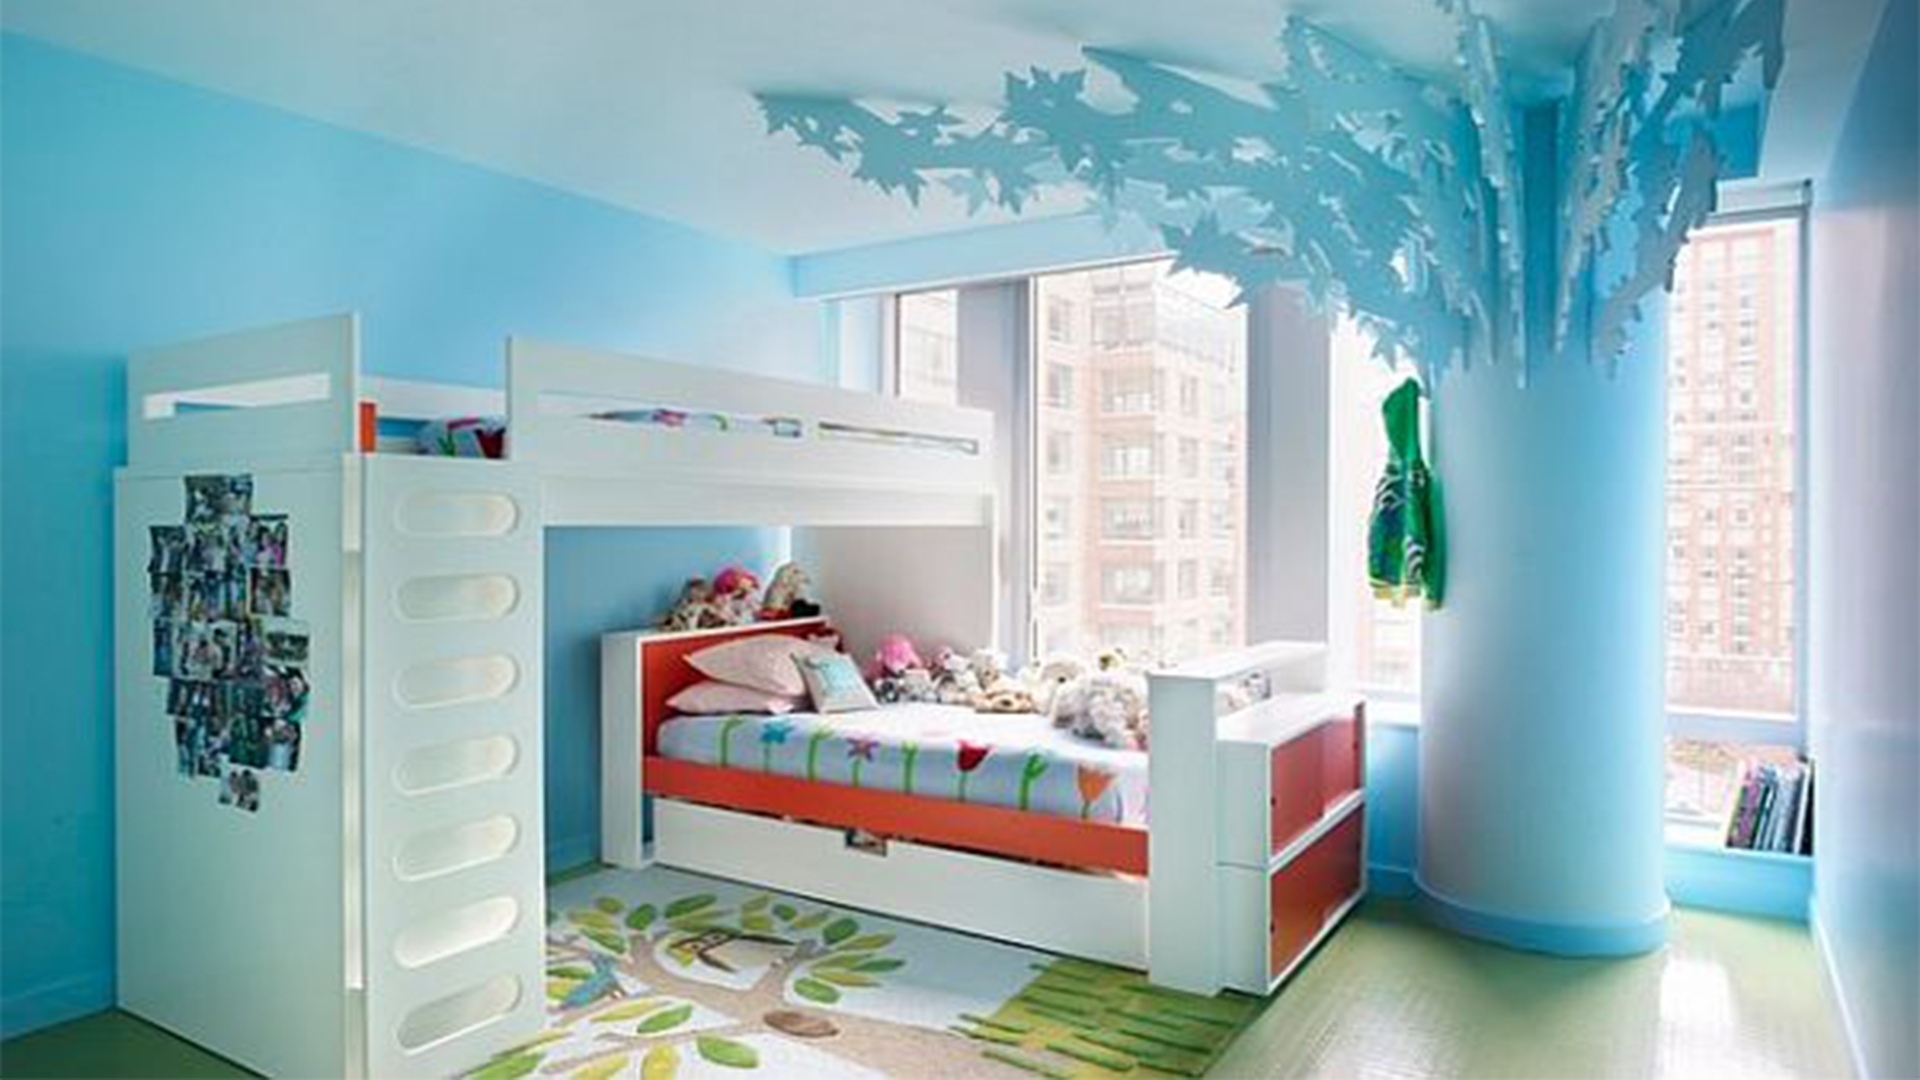 disney bedroom designs. 28  Looking to the Landscapes 42 Best Disney Room Ideas and Designs for 2017